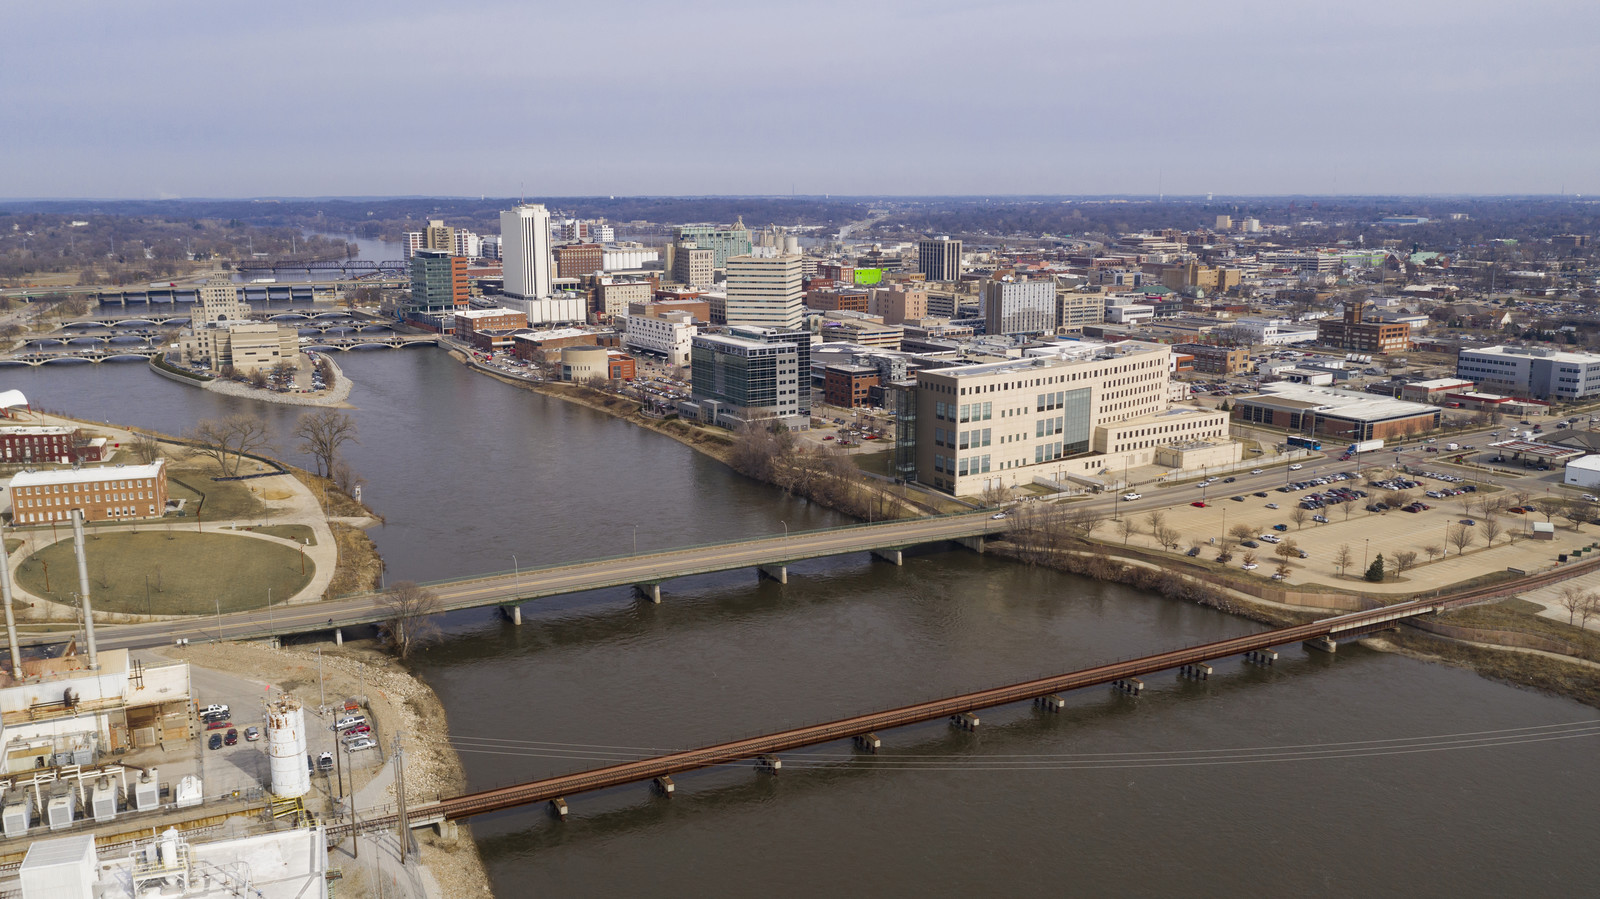 Aerial view of the cedar rapids city with the  river running thru it on a cloudy gray day